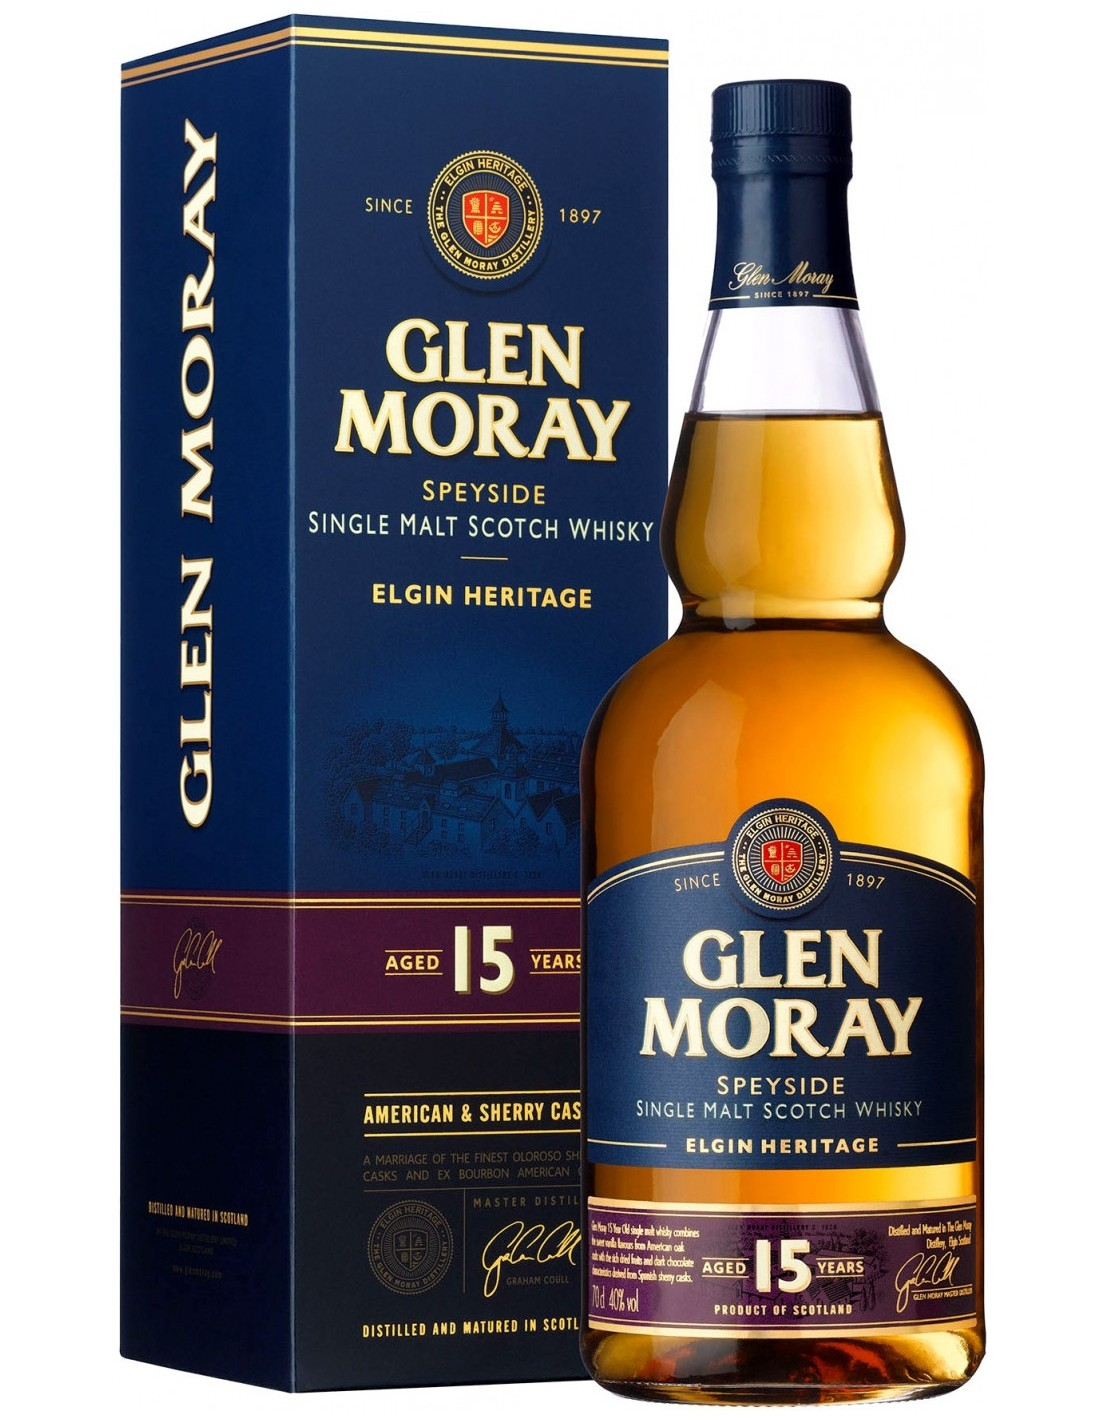 Whisky Single Malt Glen Moray, 15 ani, 40% alc., 0.7L, Scotia